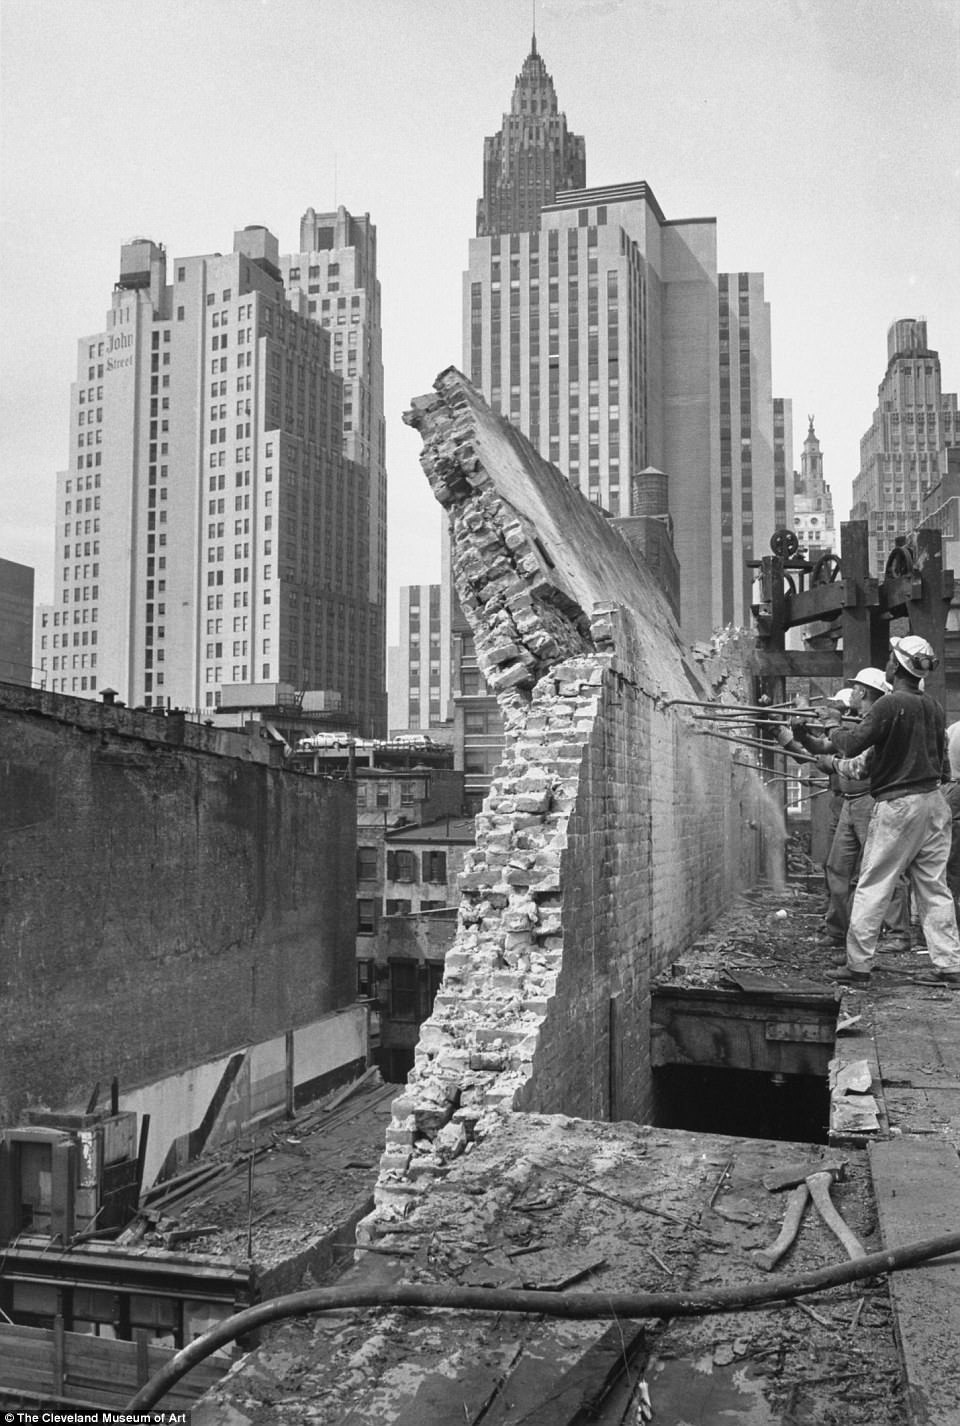 Destruction of old New York seen in mid1960s photos